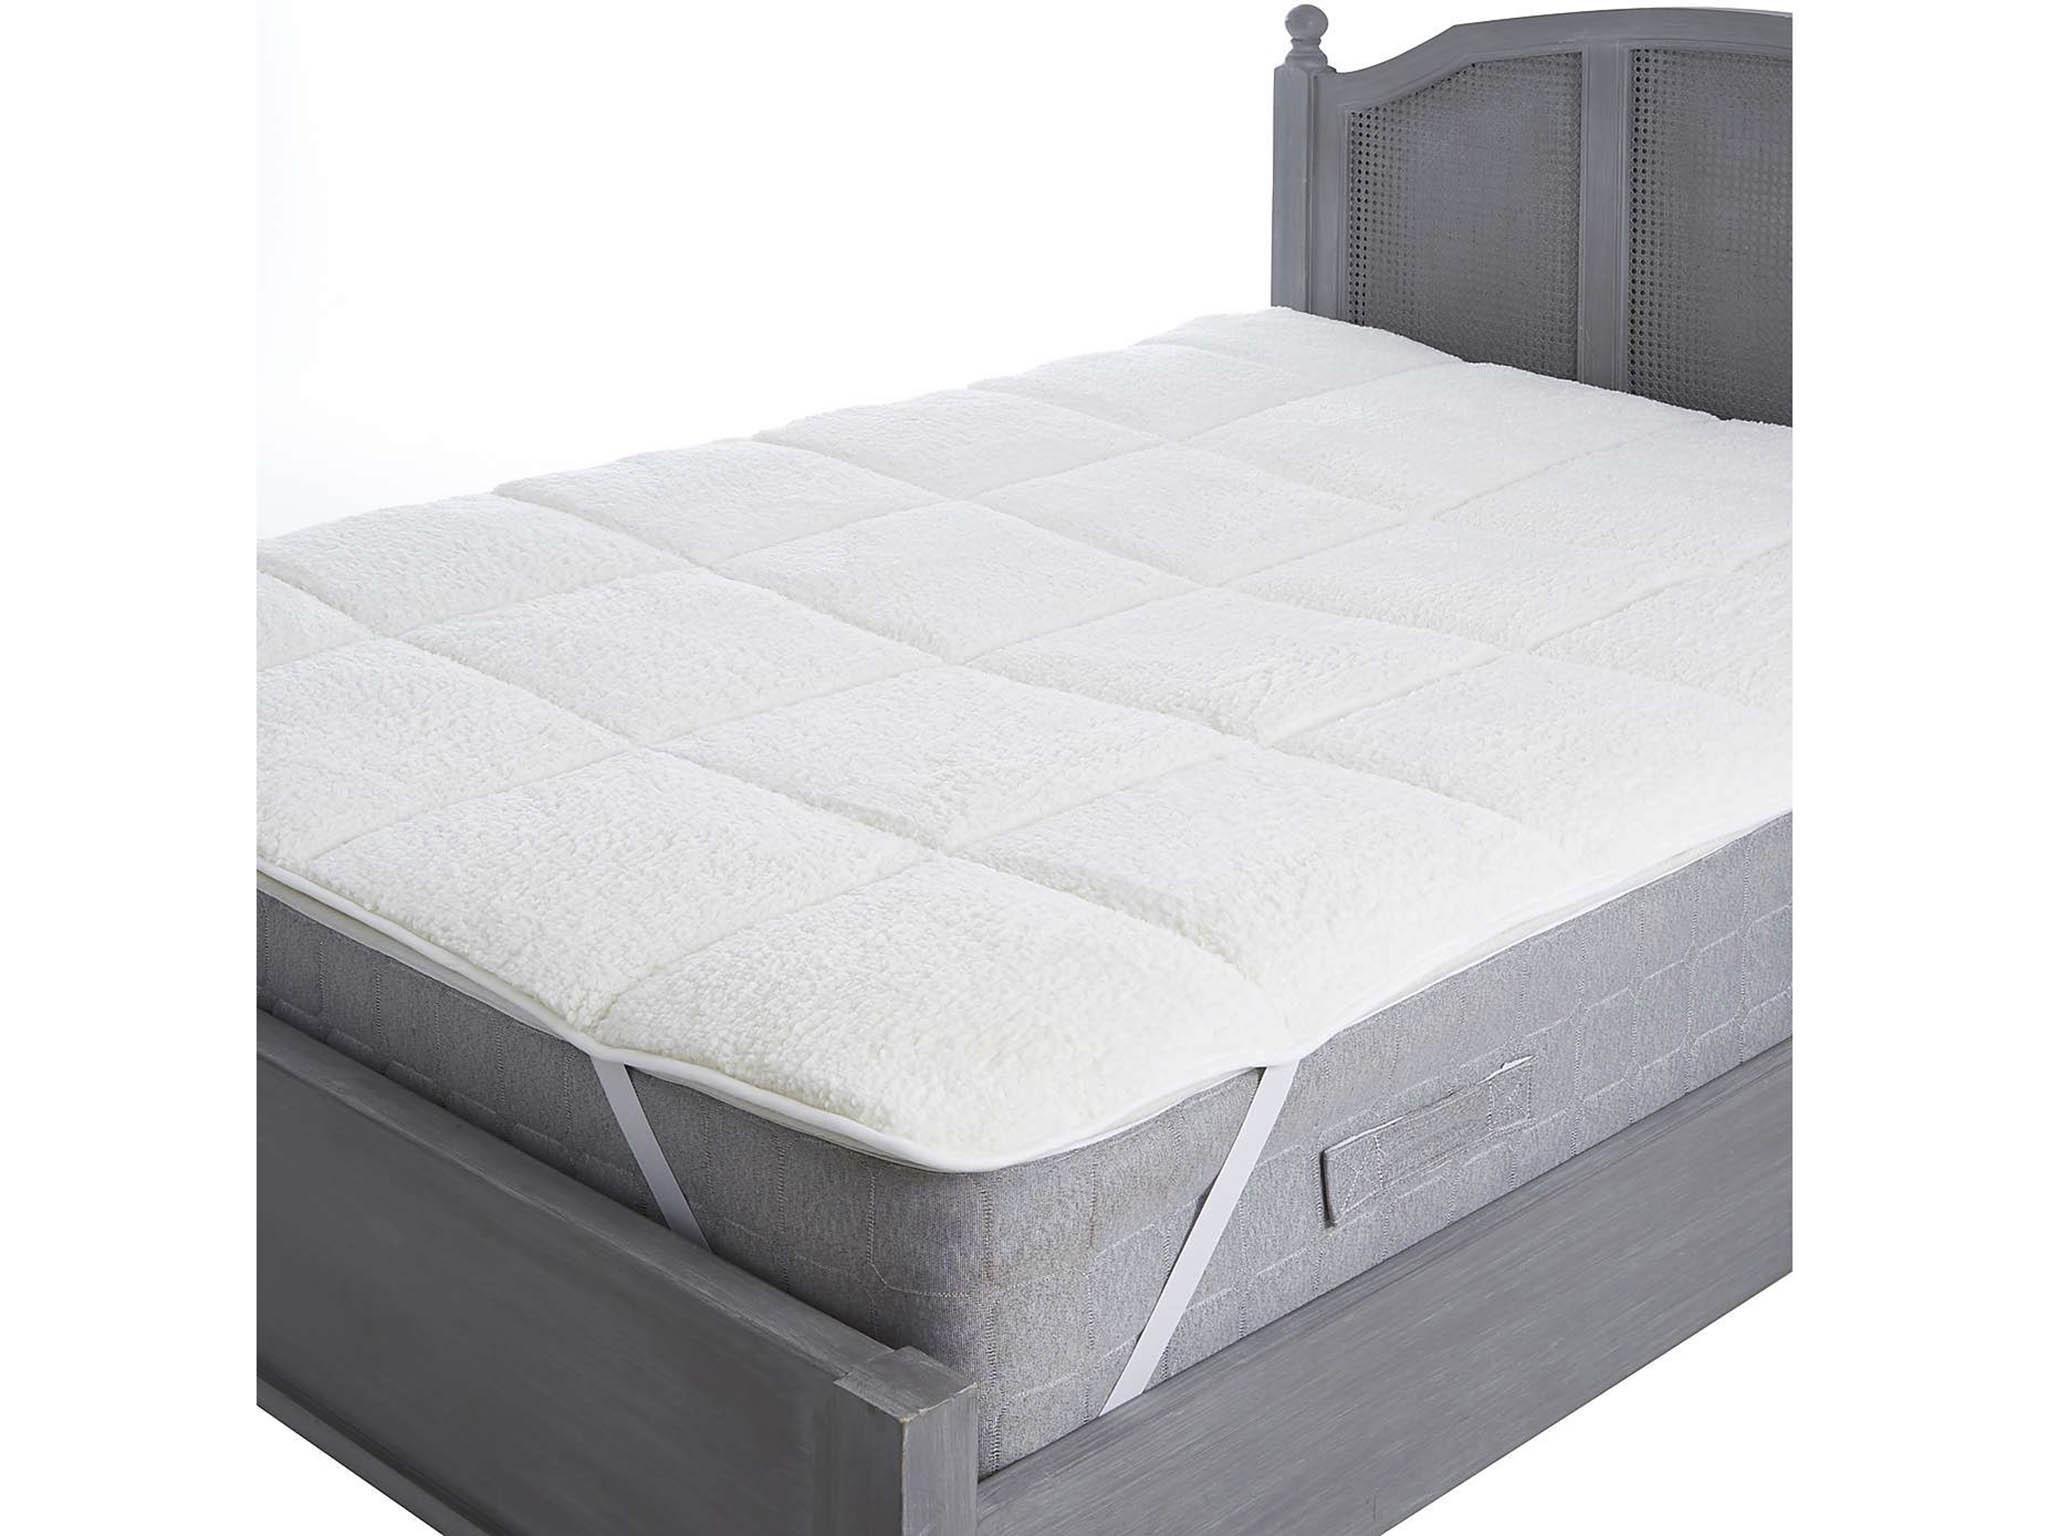 Soft Touch Luxury Mattress Topper Single Double King and Super King Size